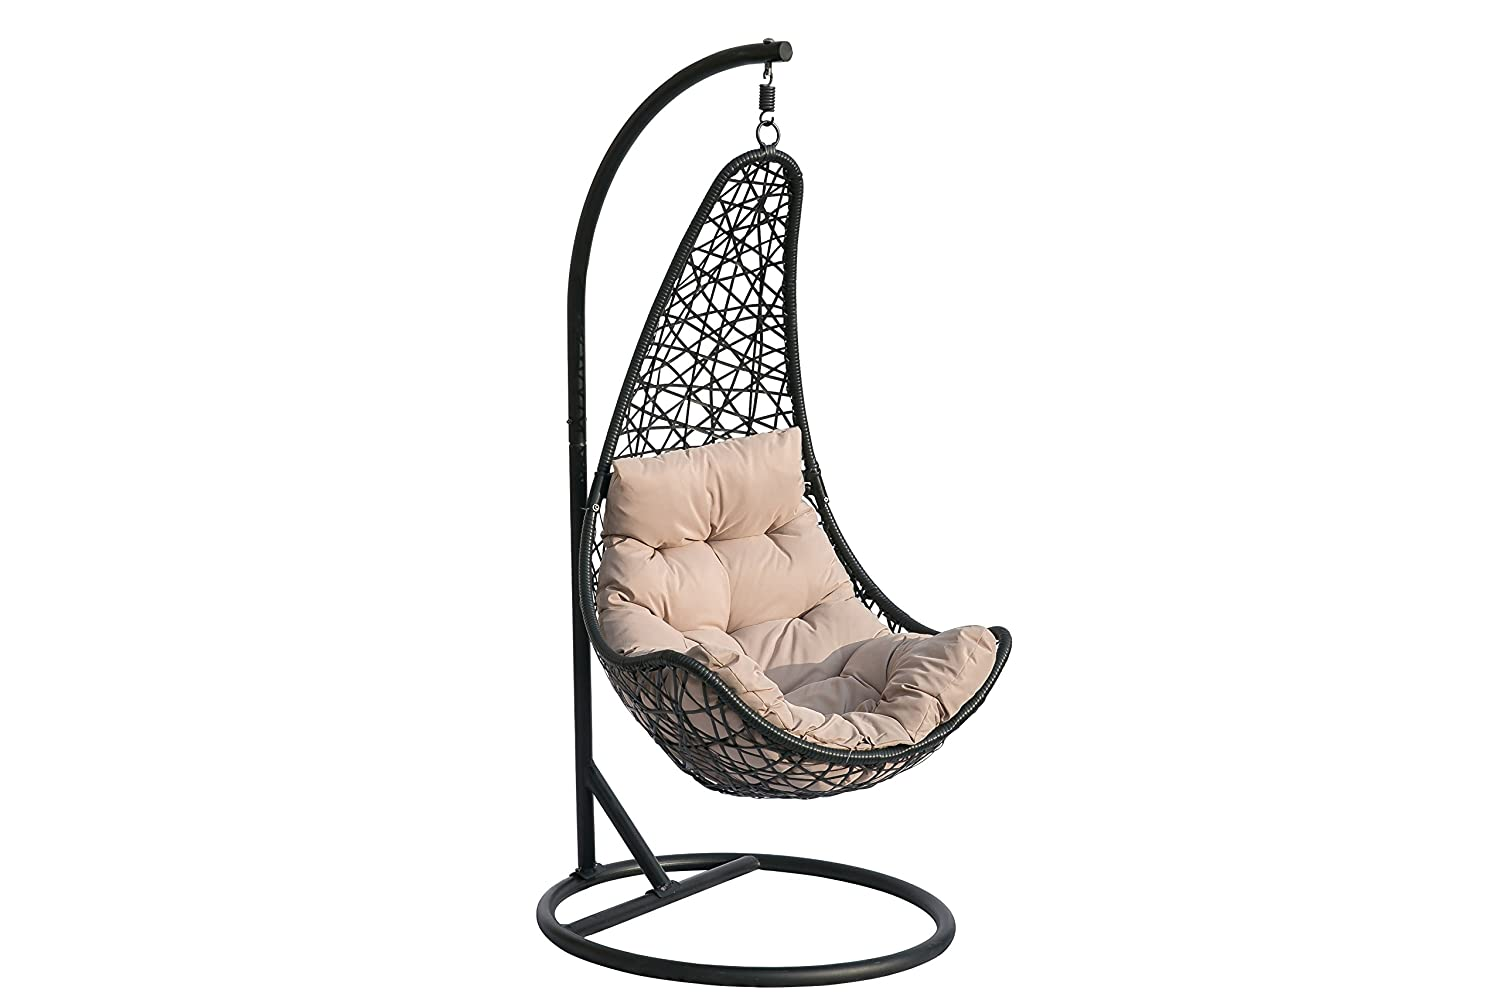 Hq Outdoor Indoor Wicker Swing Chair Rattan Patio Hanging Chair With Cushion